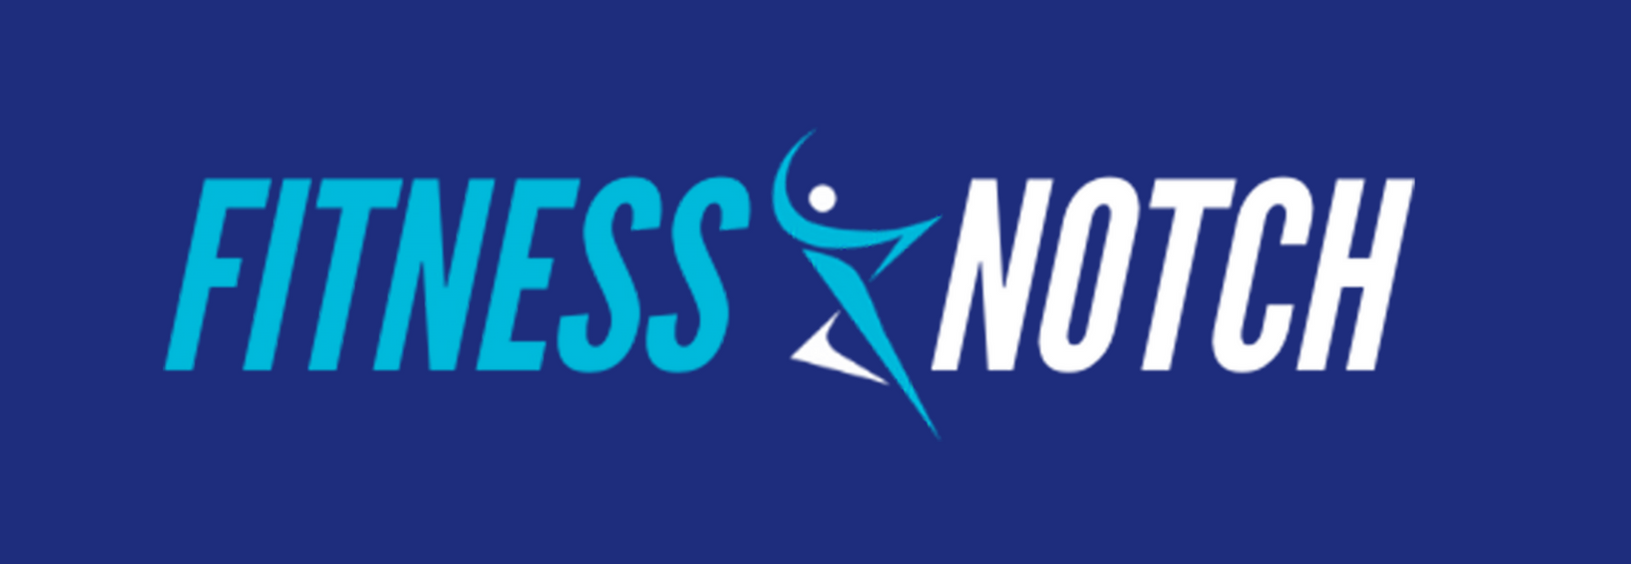 Fitness Notch Receives Positive Feedback For Supply of Gym and Fitness Equipment